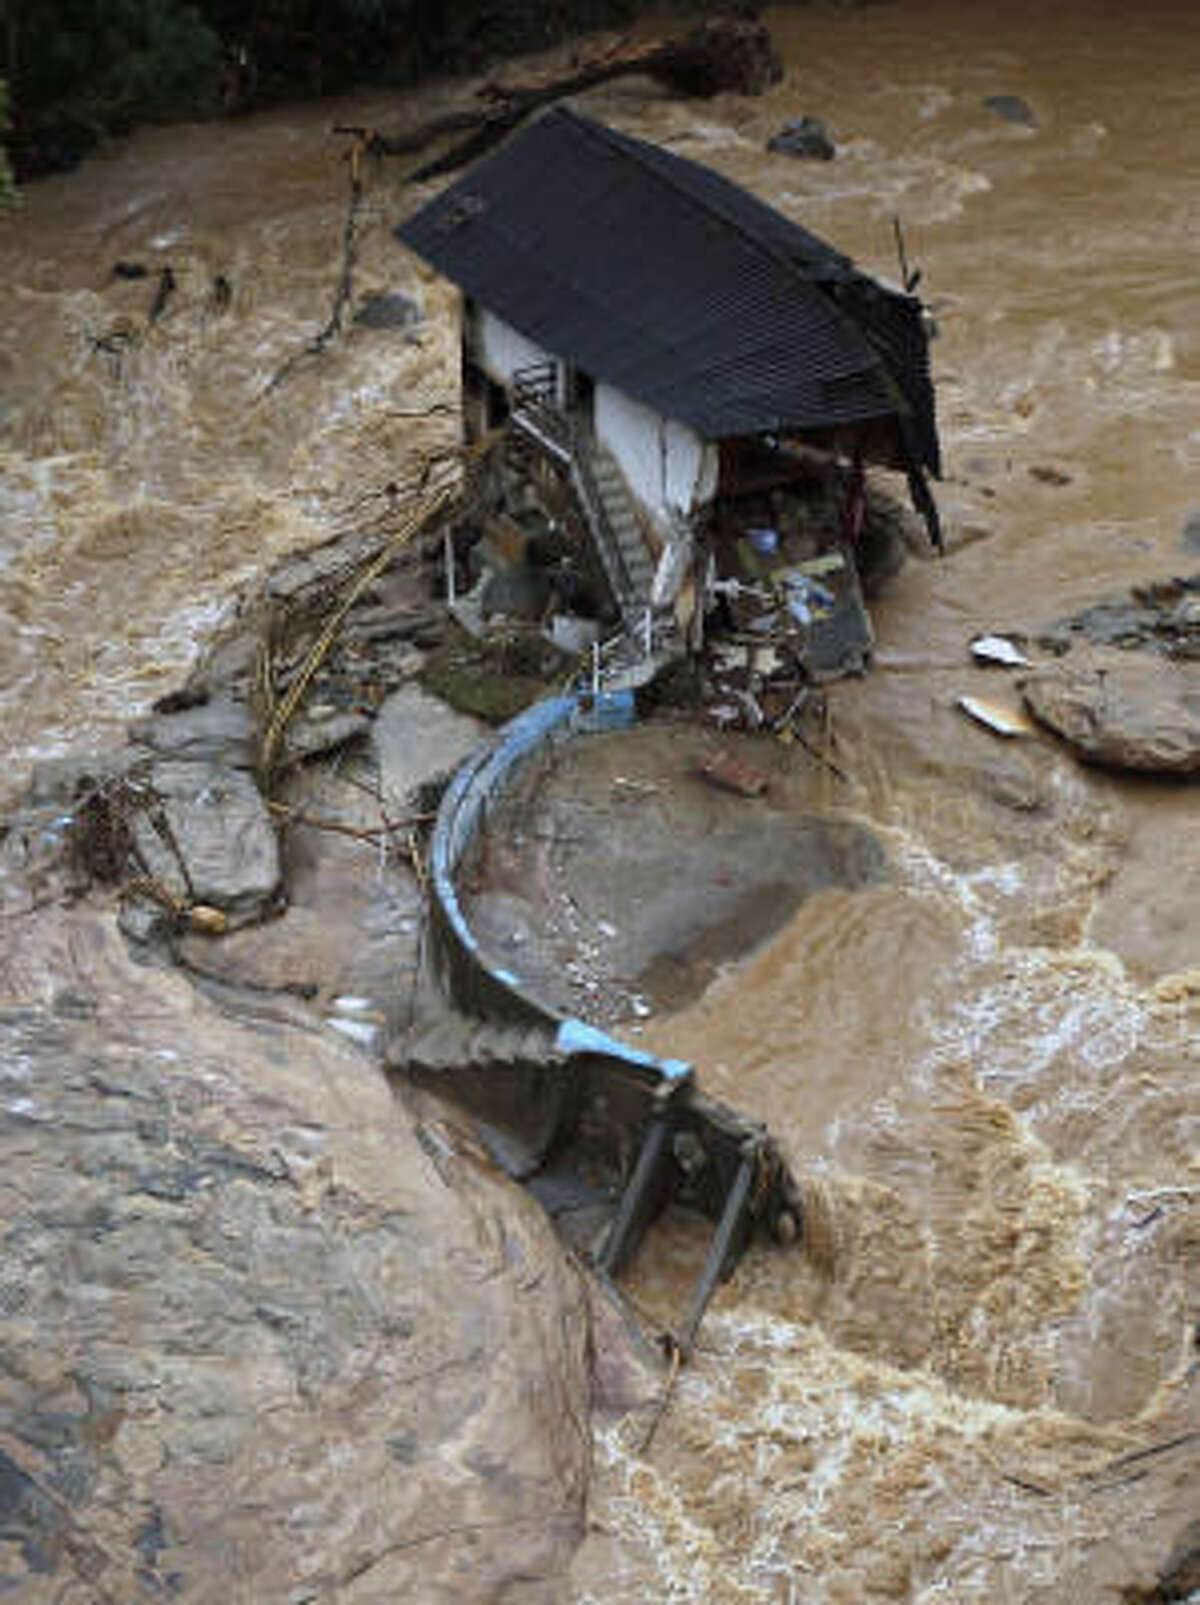 A damaged house surrounded by flooding in seen in an area affected by a landslide in Nova Friburgo, Brazil.